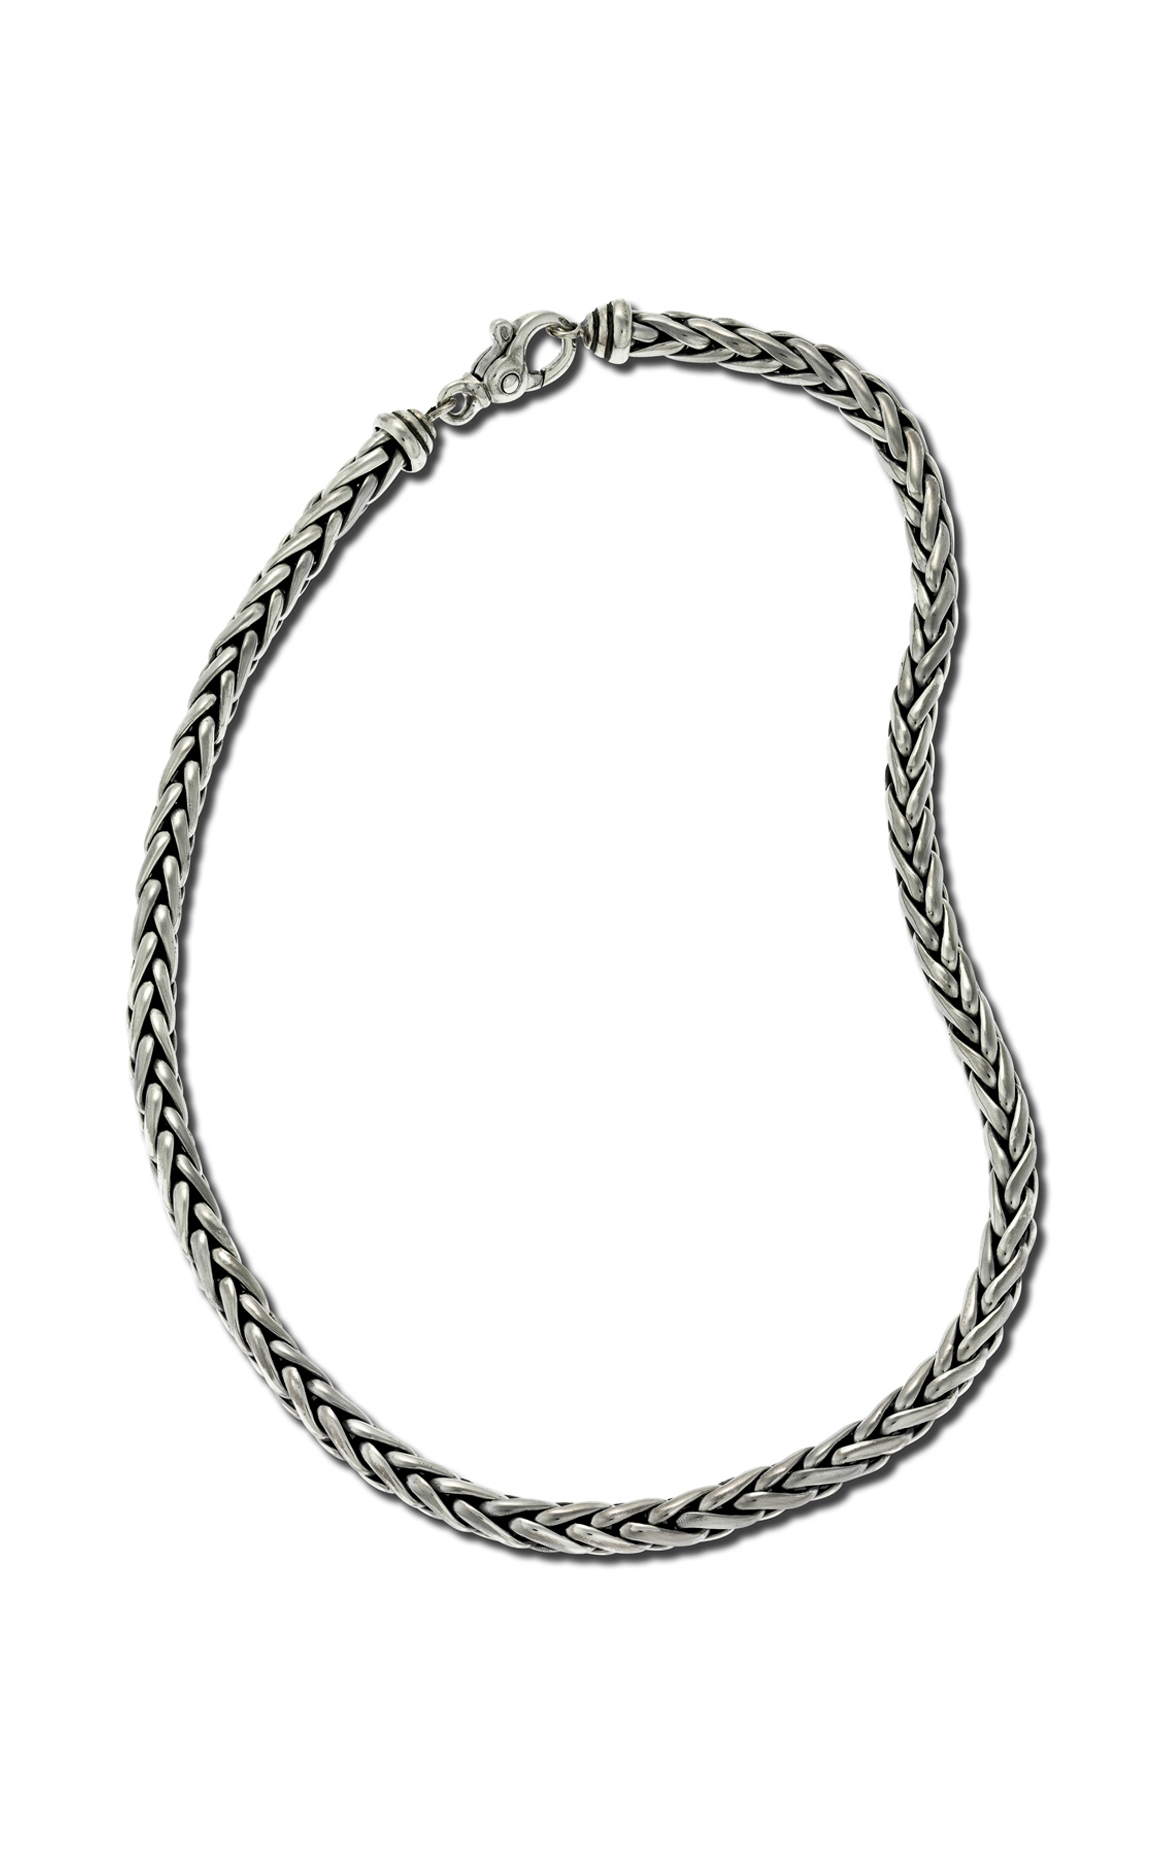 Zina Classic Necklace A669-17-1 product image